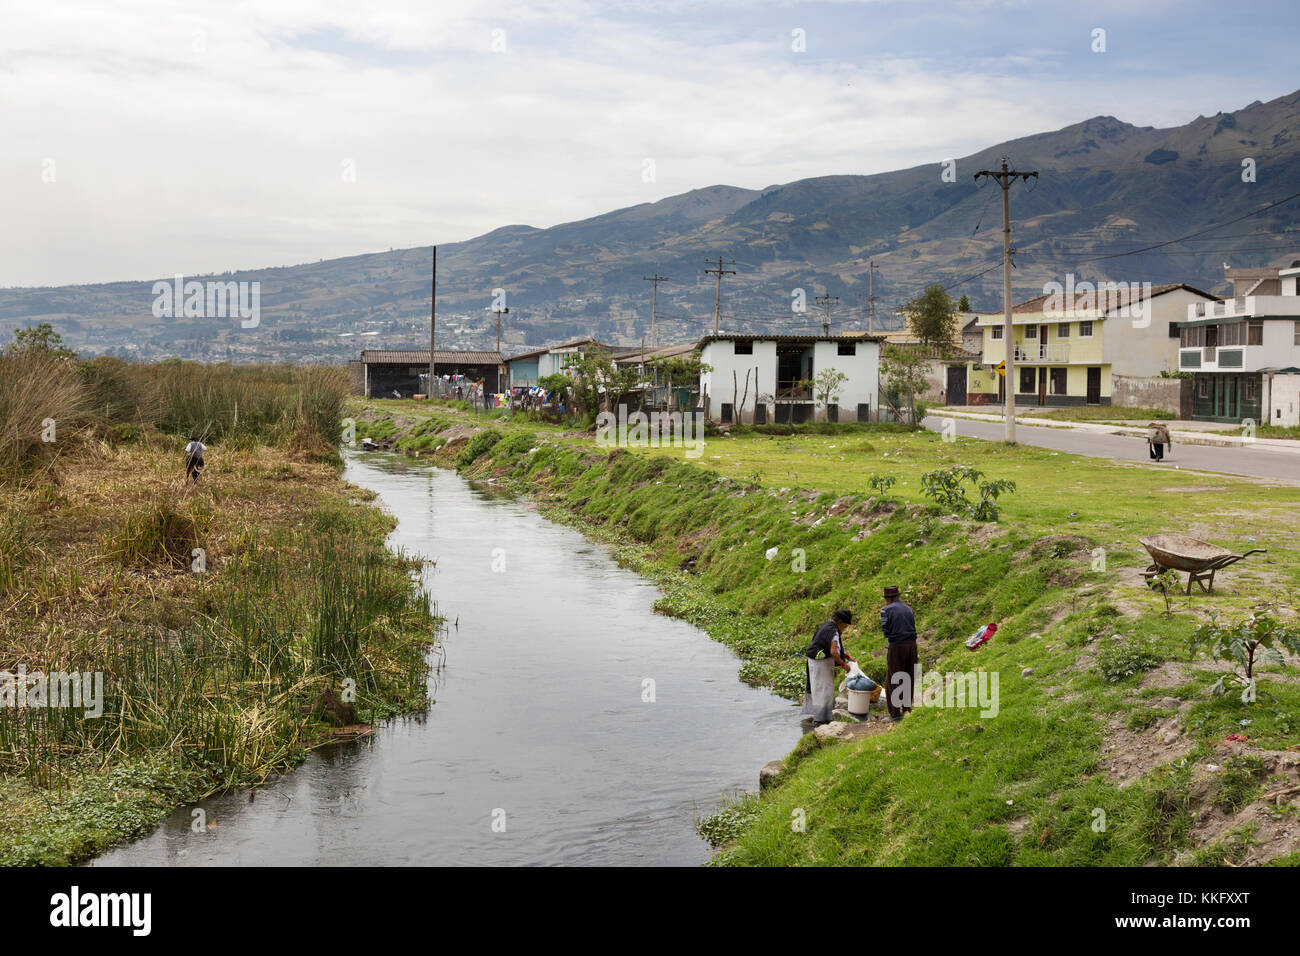 Ecuador South America - indigenous people farming and washing clothes in the river in a village, Northern Ecuador - Stock Image